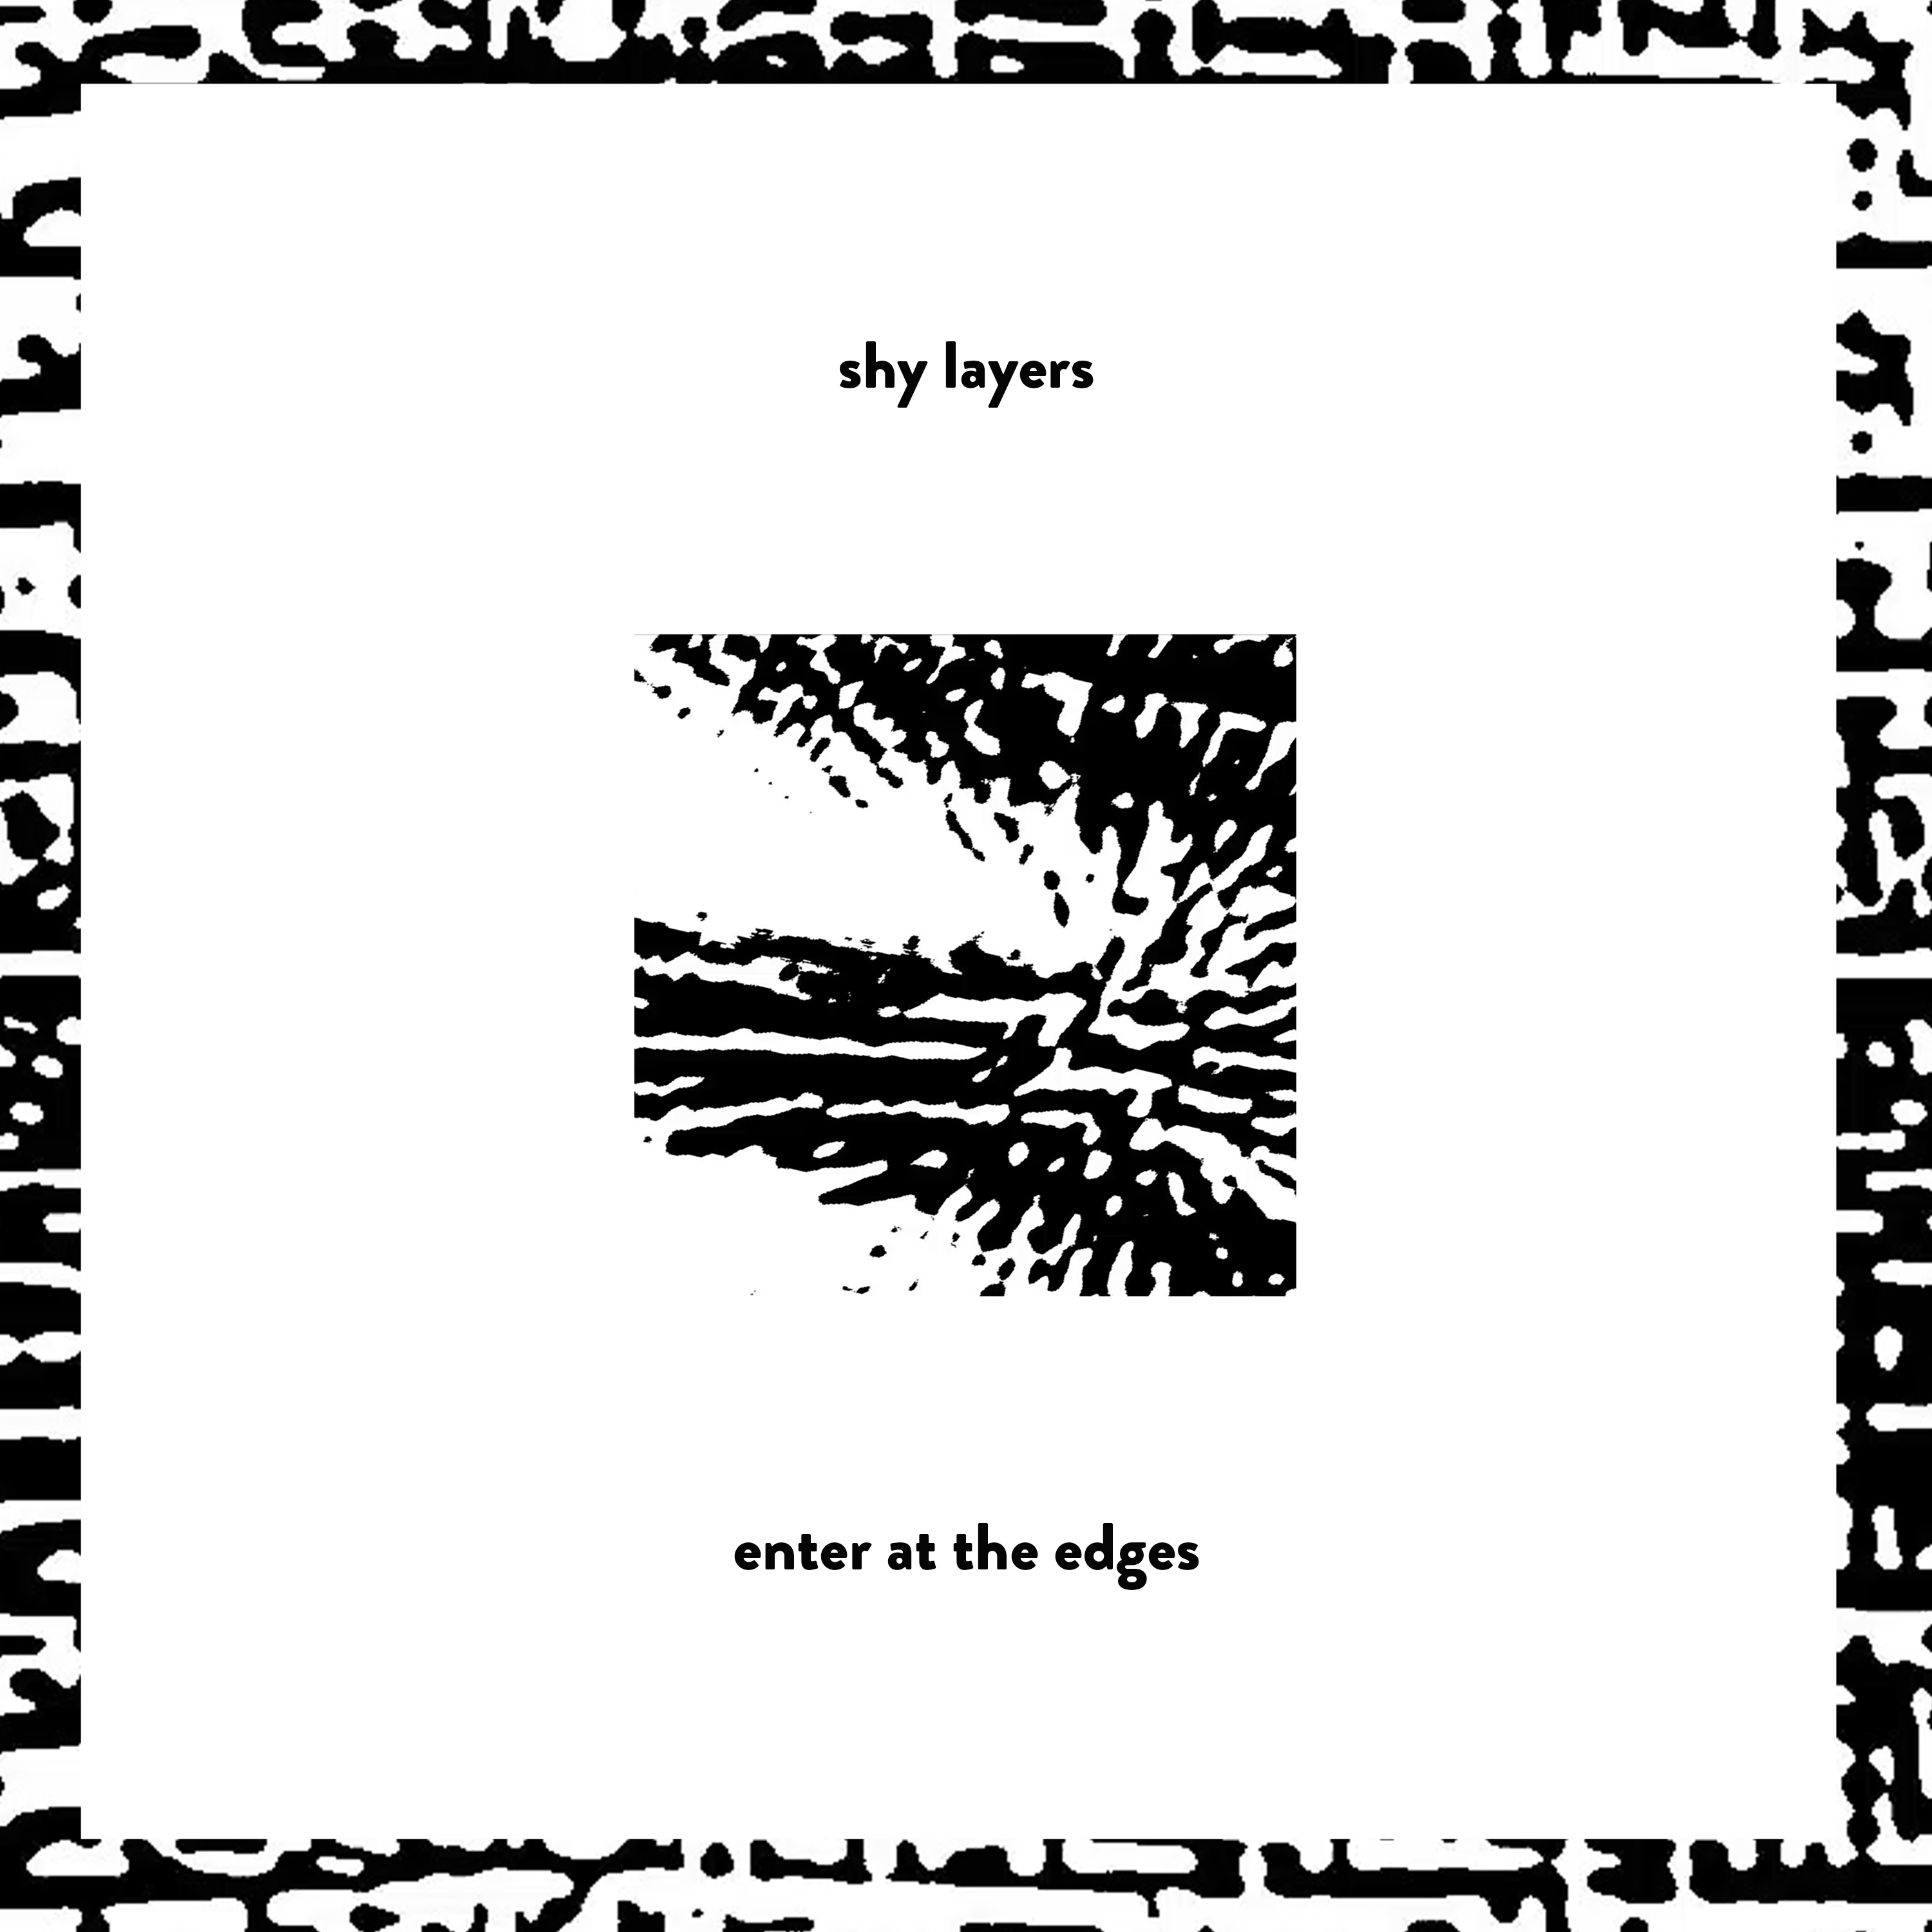 Shy Layers - Enter At The Edges